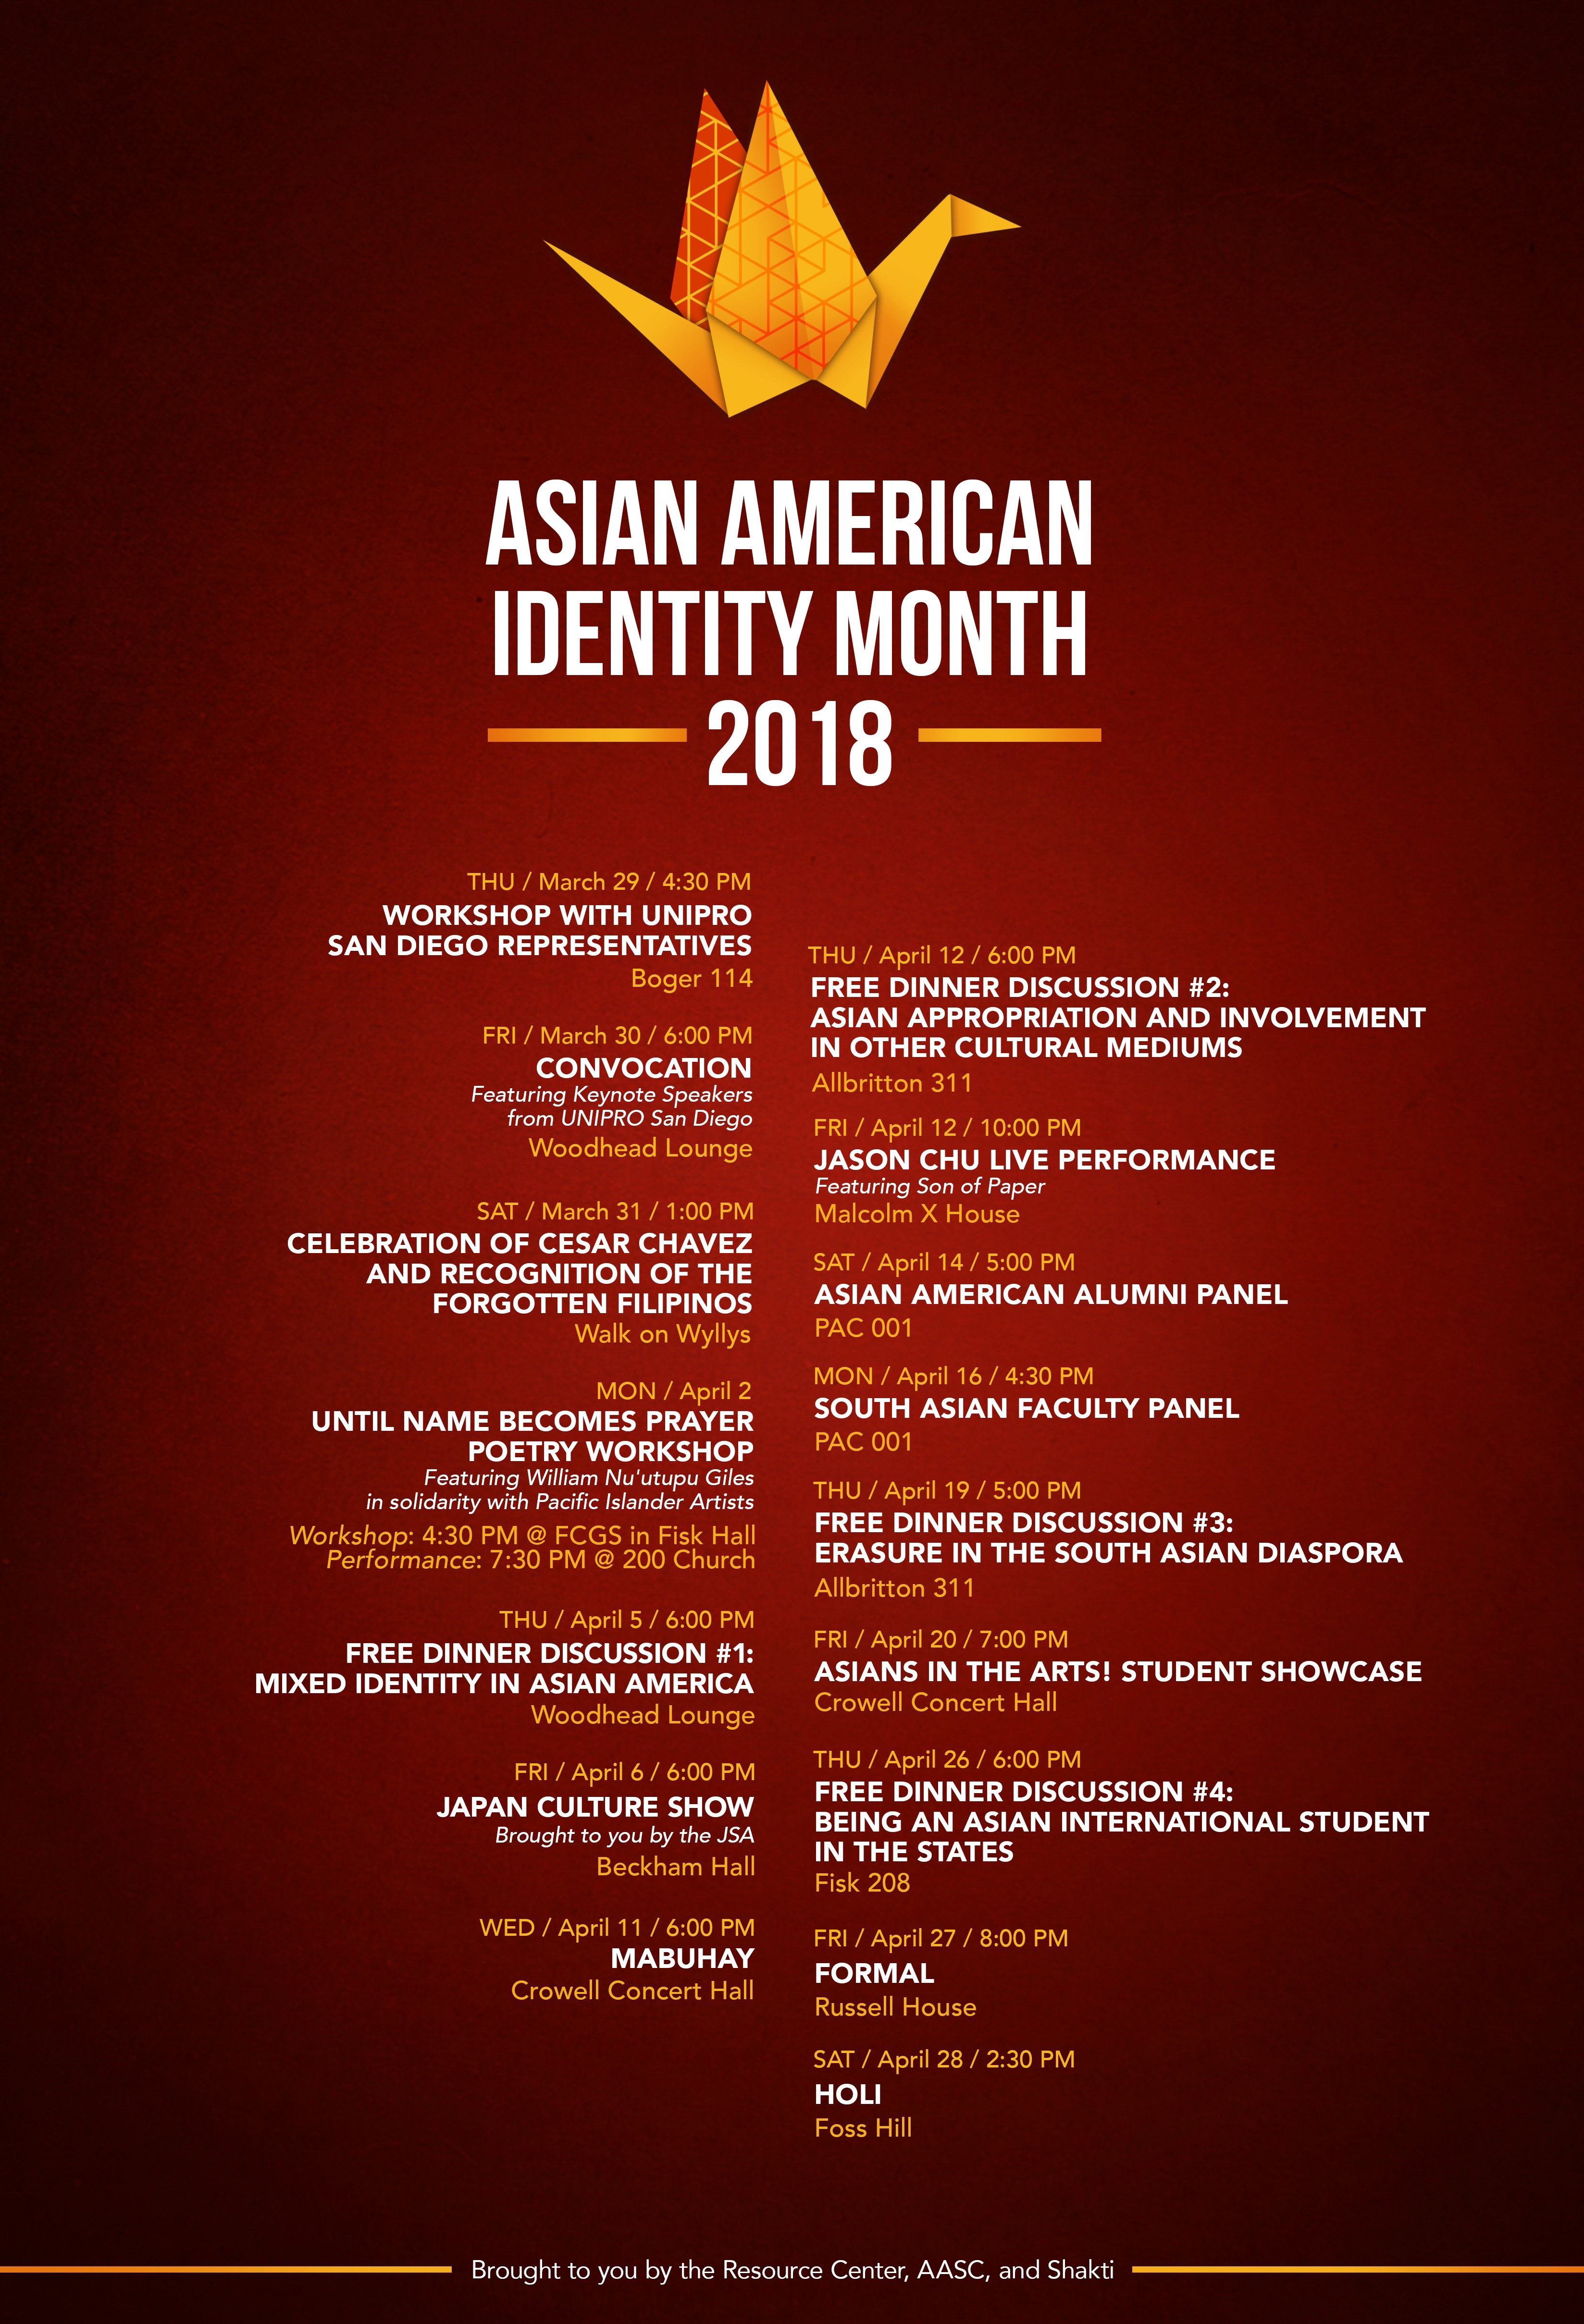 c/o Asian American Student Collective and Shakti